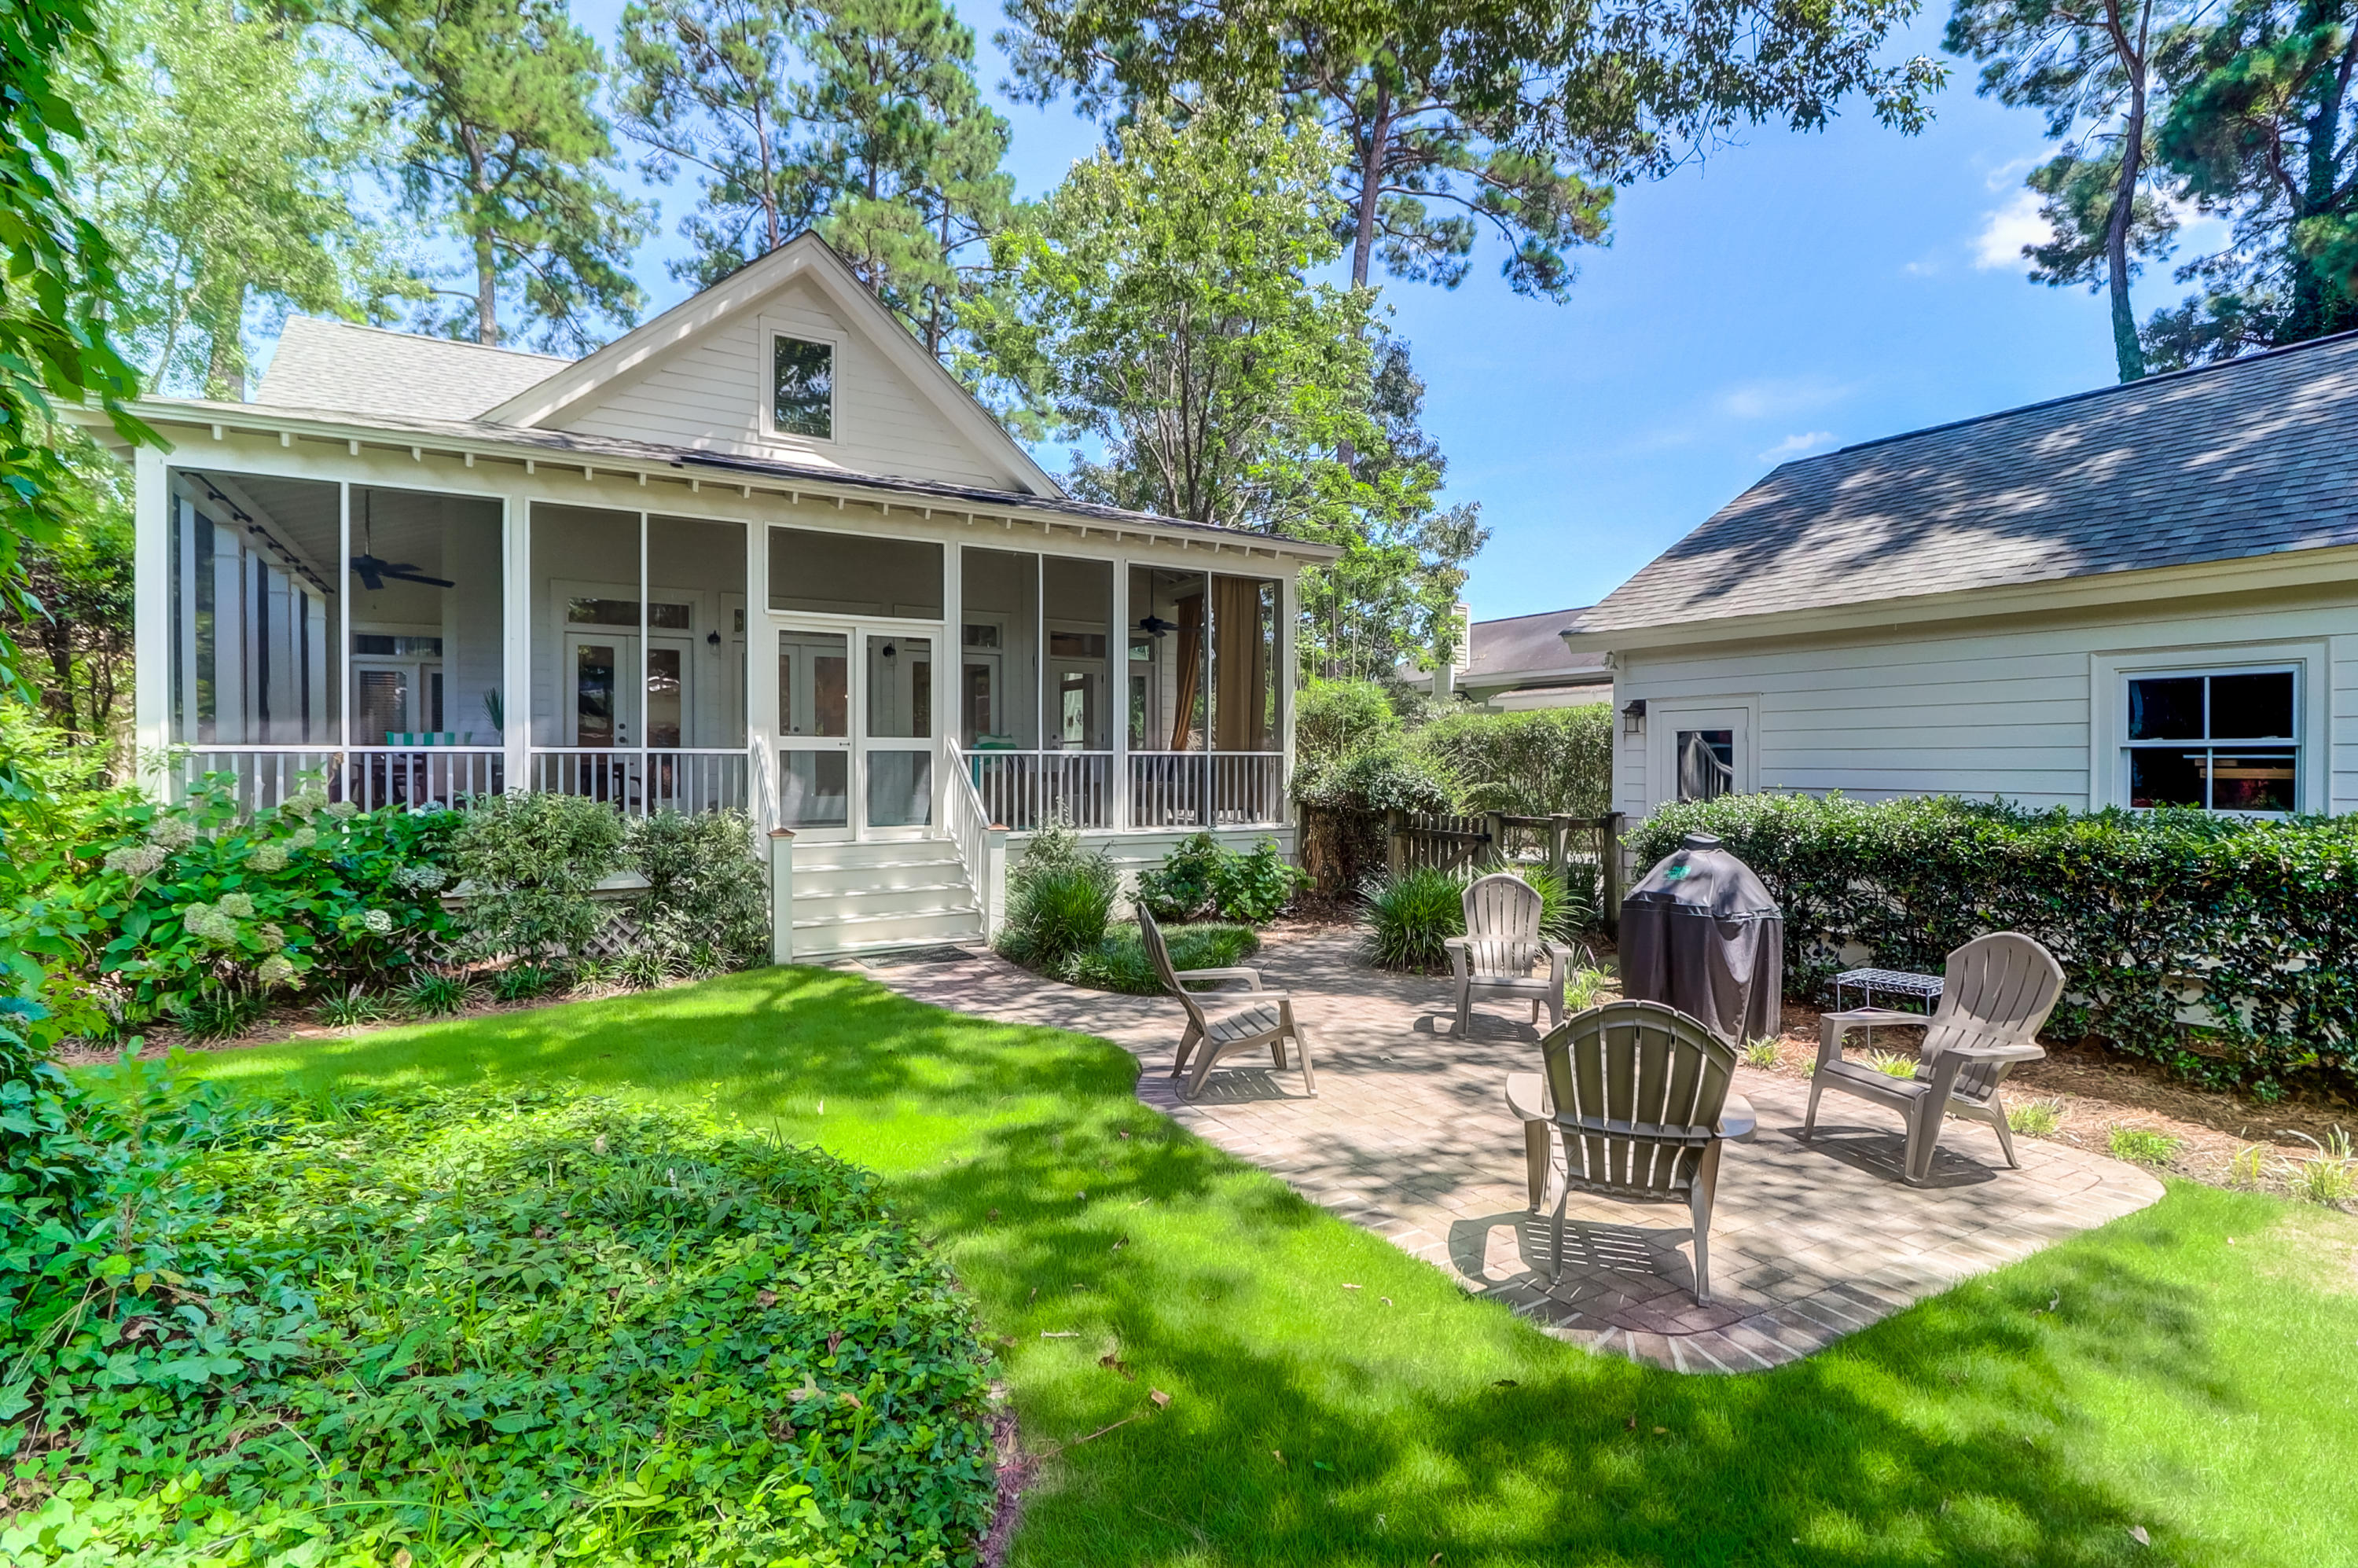 The Villages In St Johns Woods Homes For Sale - 5056 Coral Reef Dr, Johns Island, SC - 4